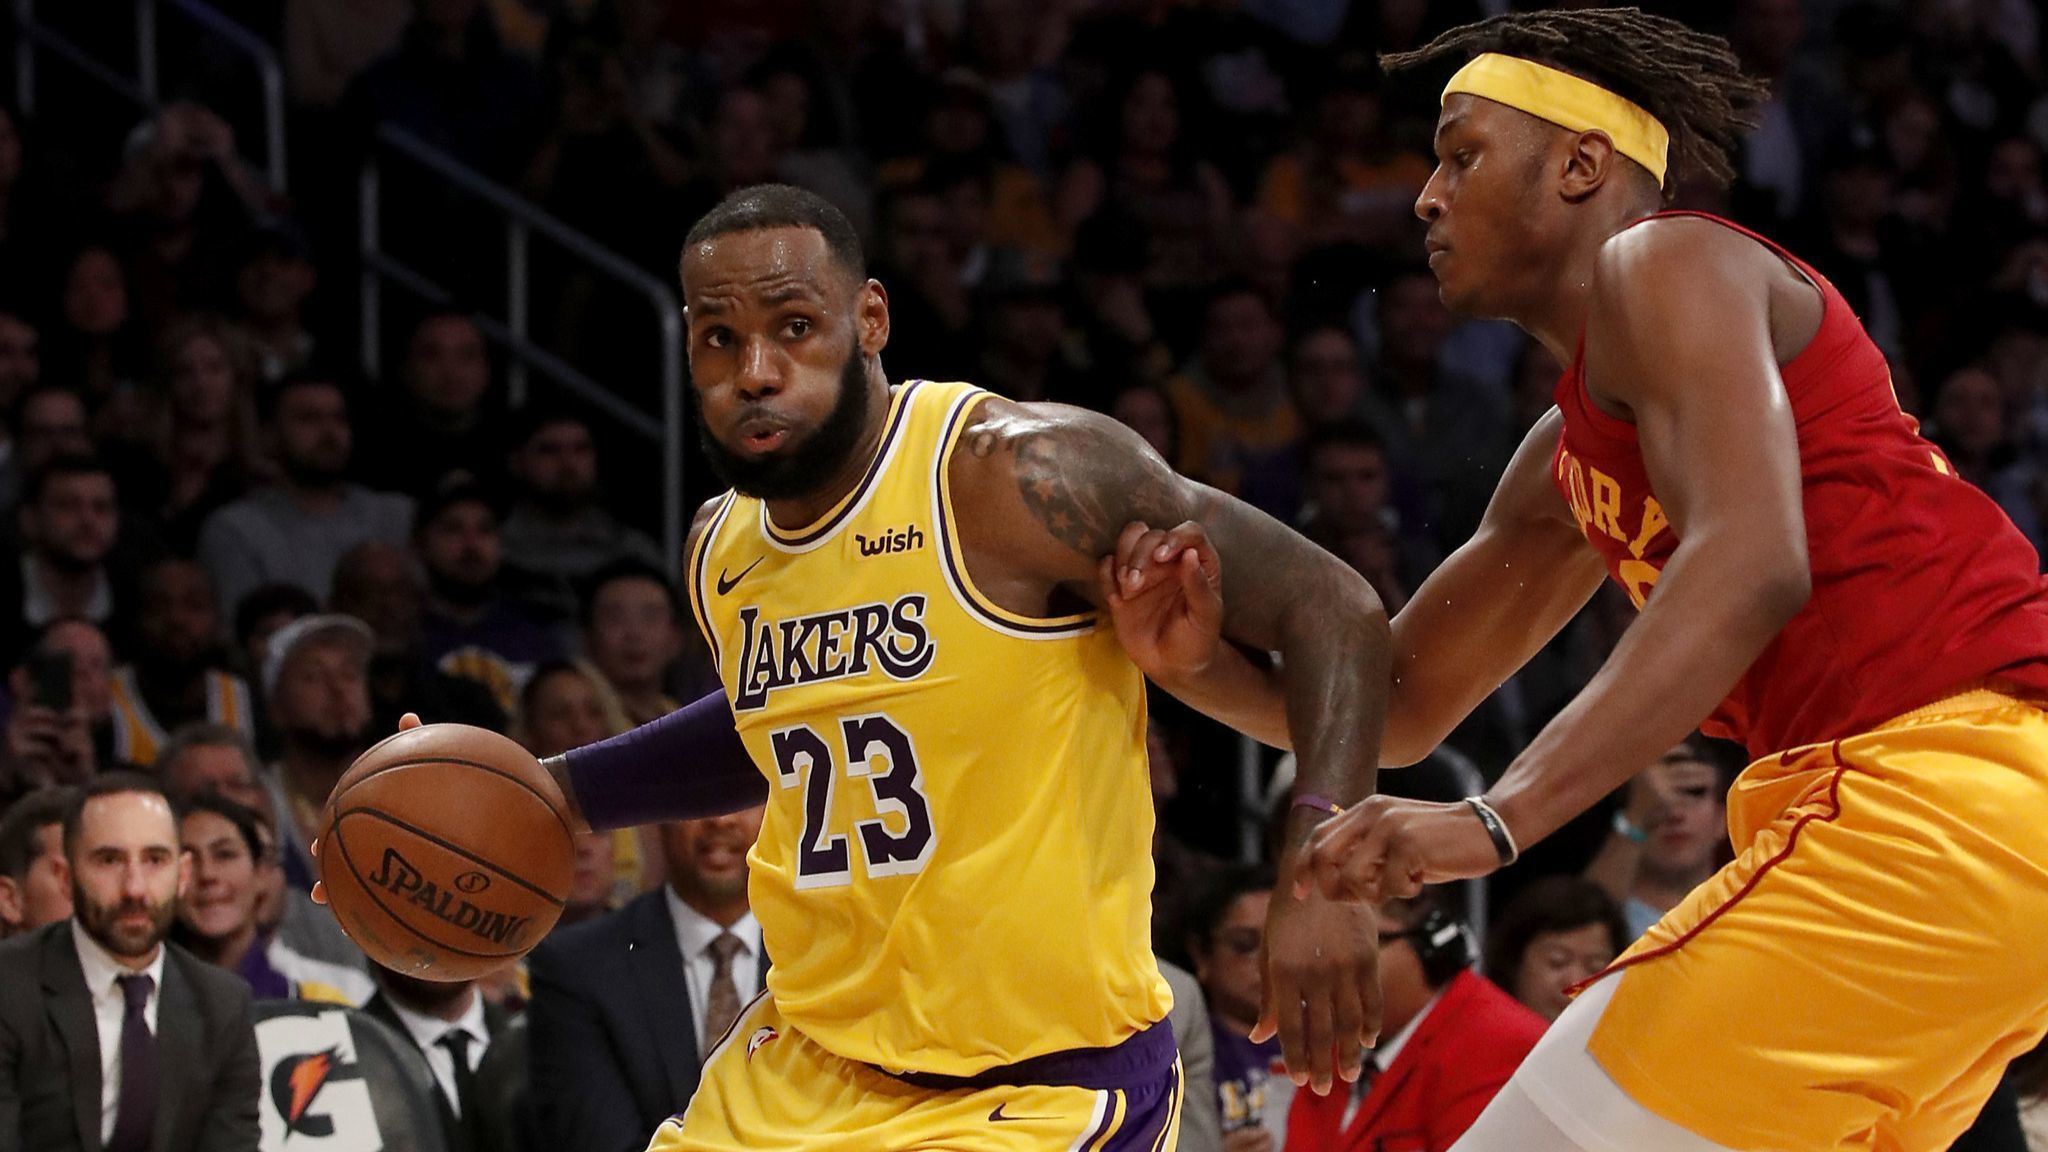 Lakers' LeBron James takes over in 104-96 victory over short-handed Pacers